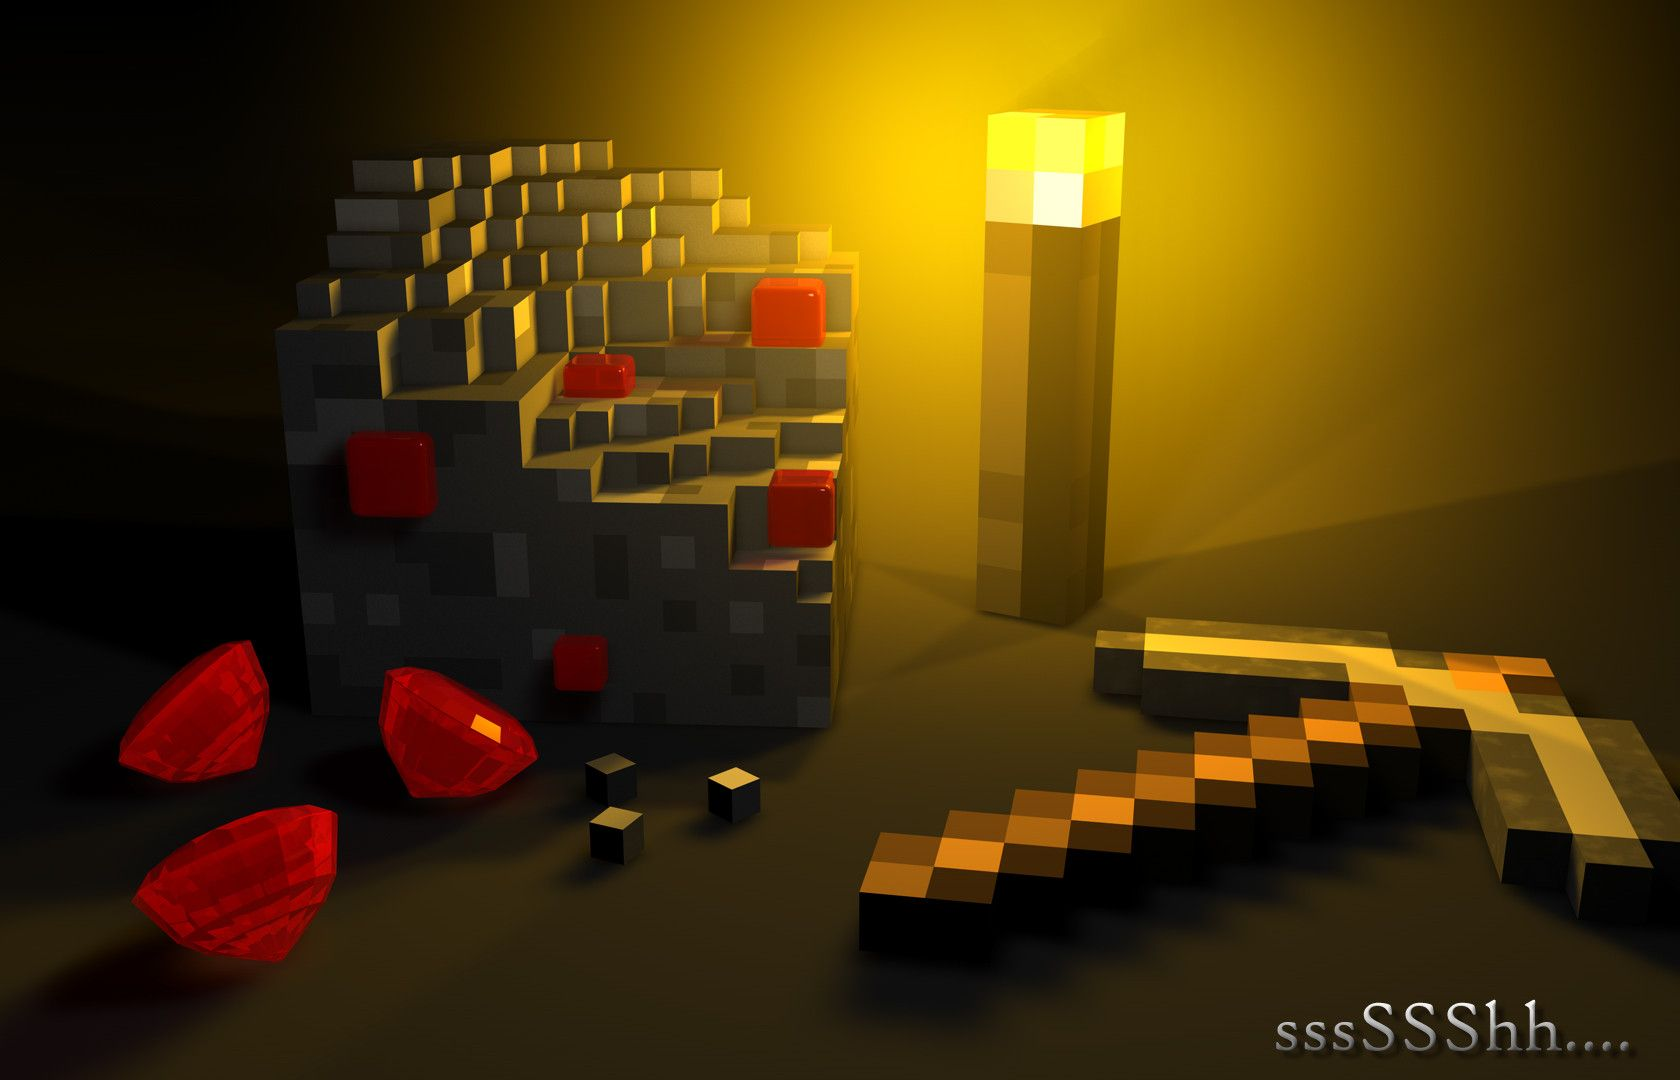 Minecraft Wallpapers For Laptop Wallpapers) – Adorable Wallpapers